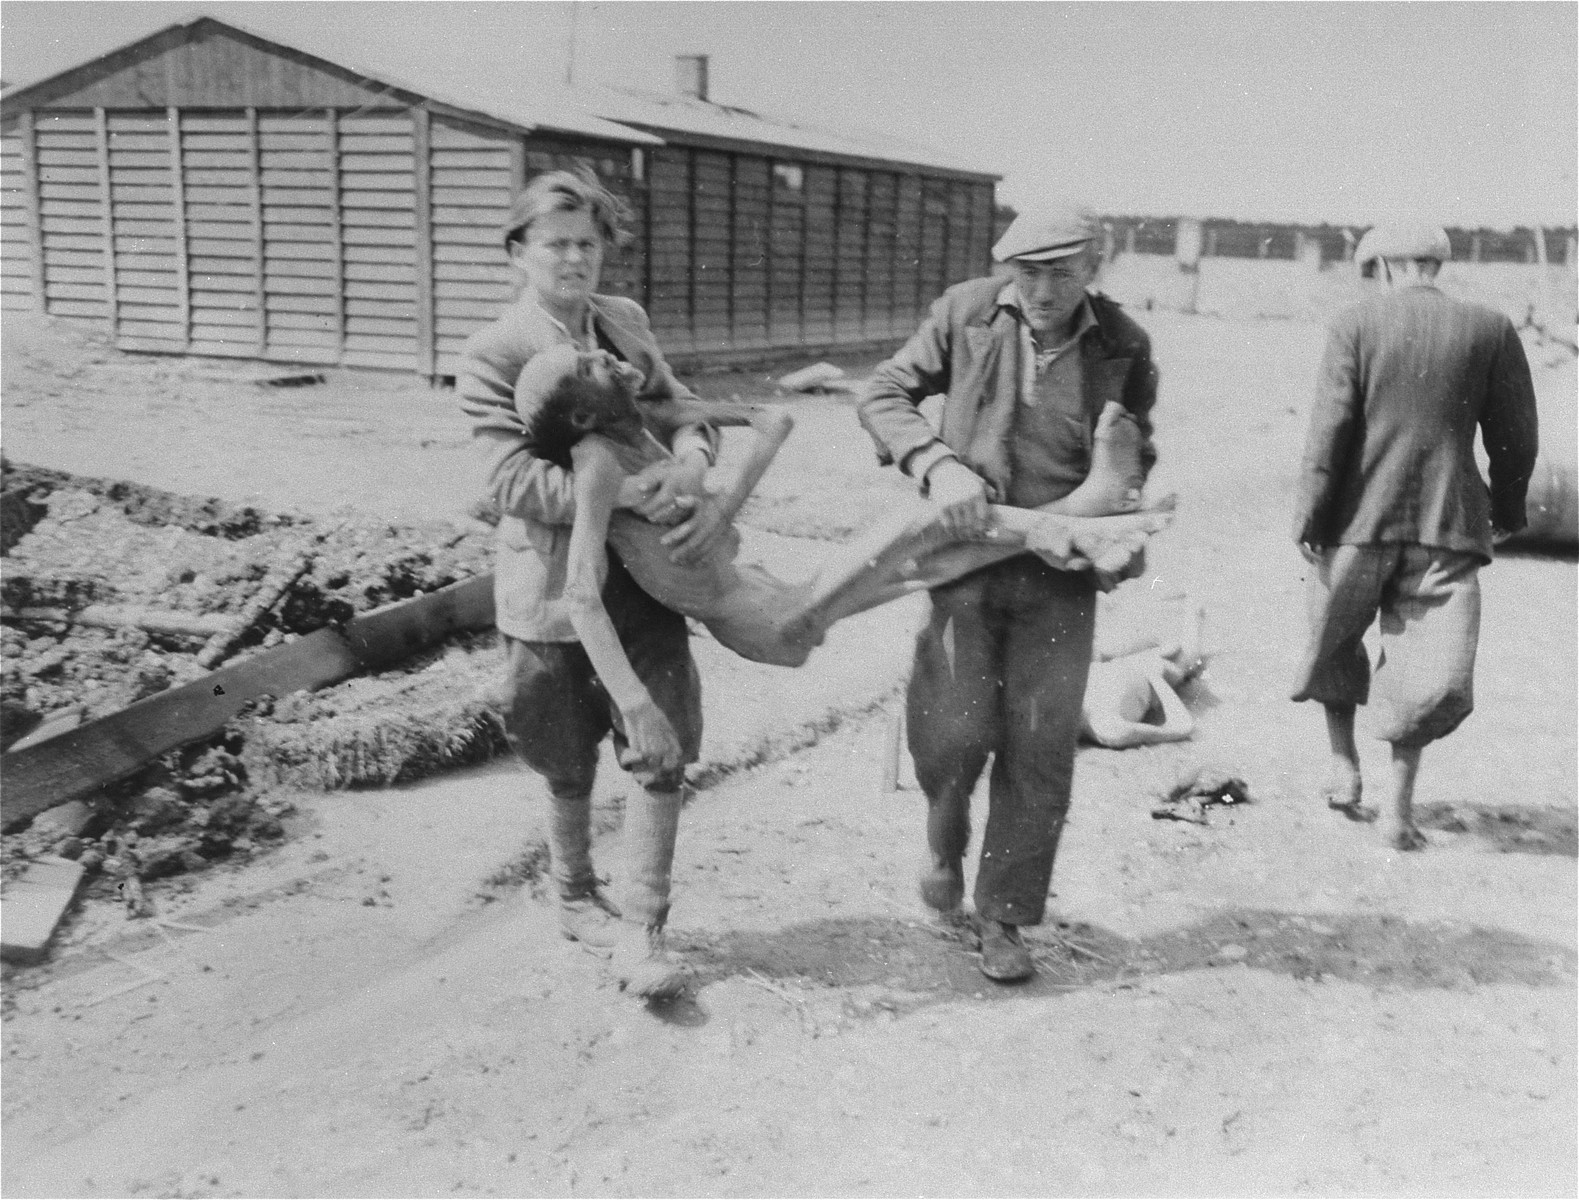 German civilians from the town of Hurlach are forced to carry corpses to mass graves for burial.